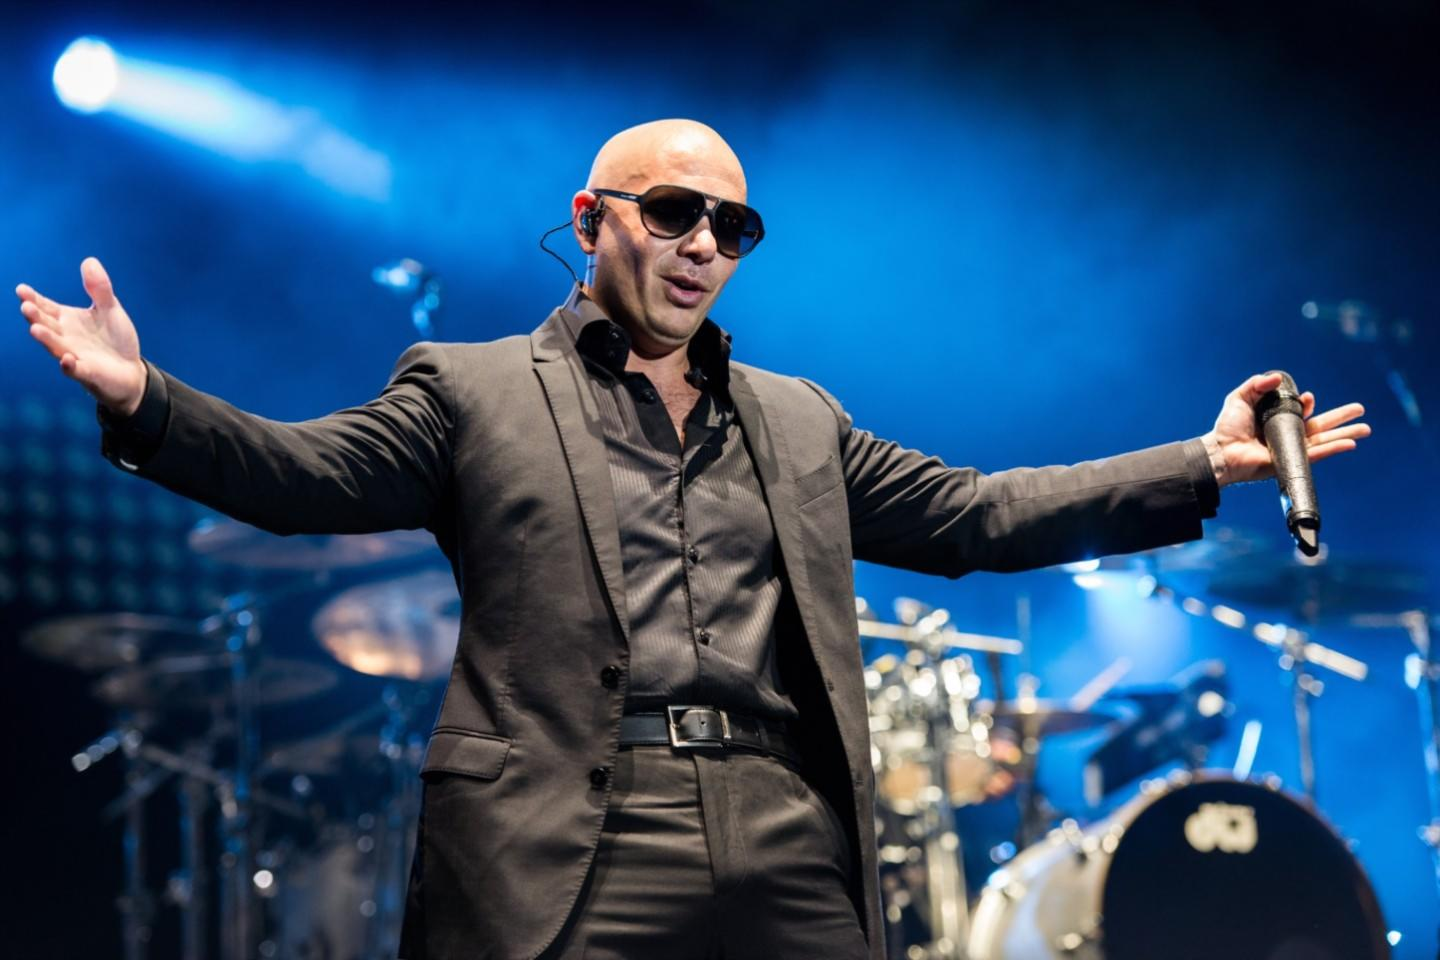 Pitbull Tickets | Pitbull Tour Dates 2019 and Concert